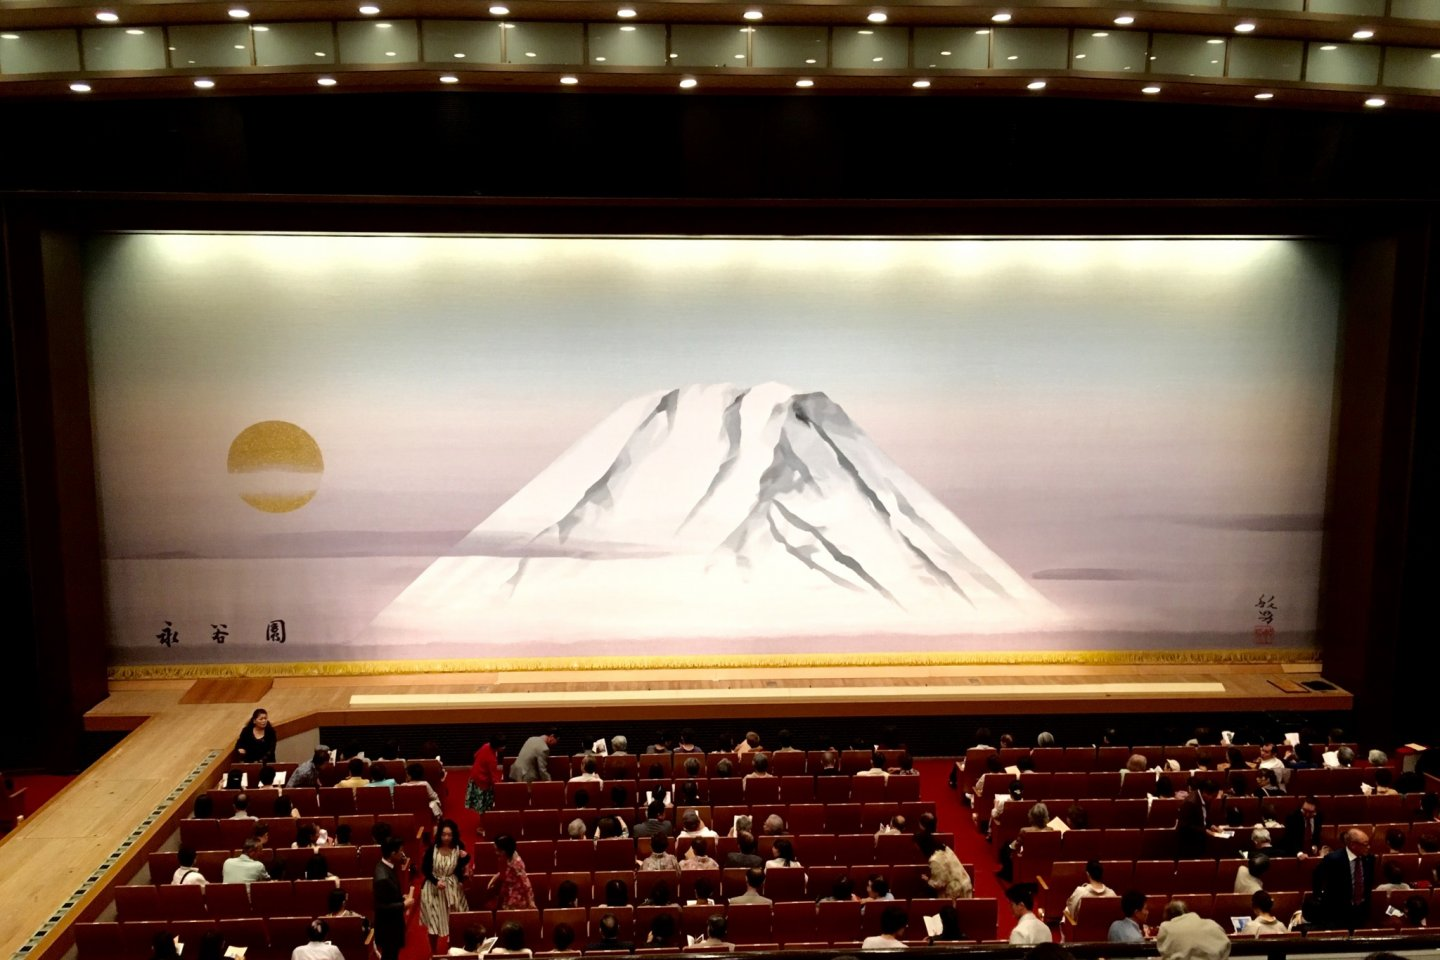 Mt Fuji adorns the stage before showtime